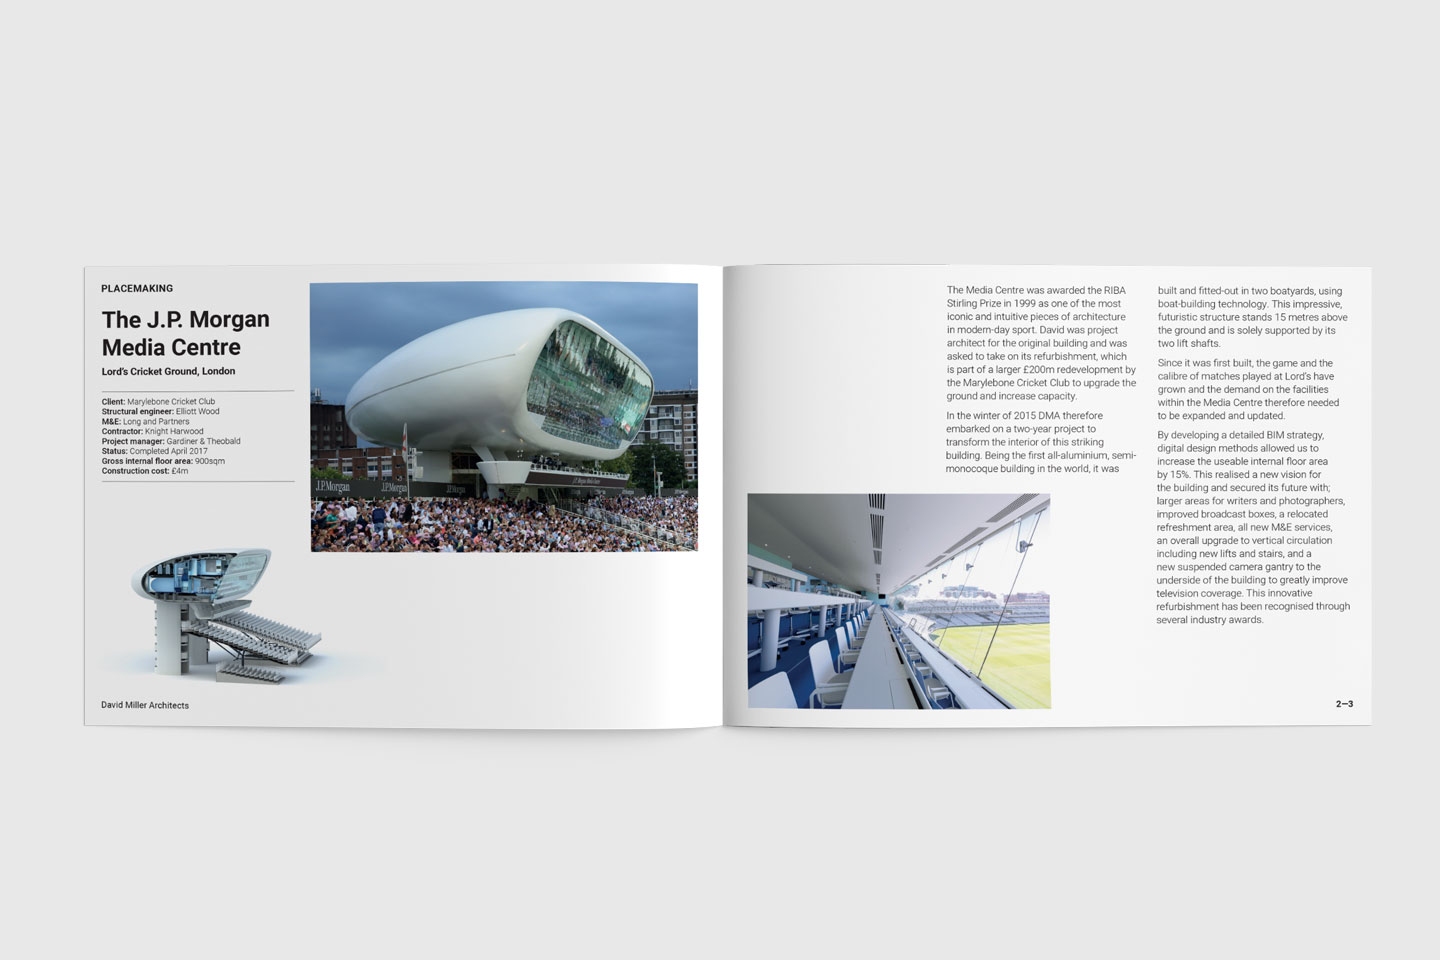 David Miller Architects - Brochure pages